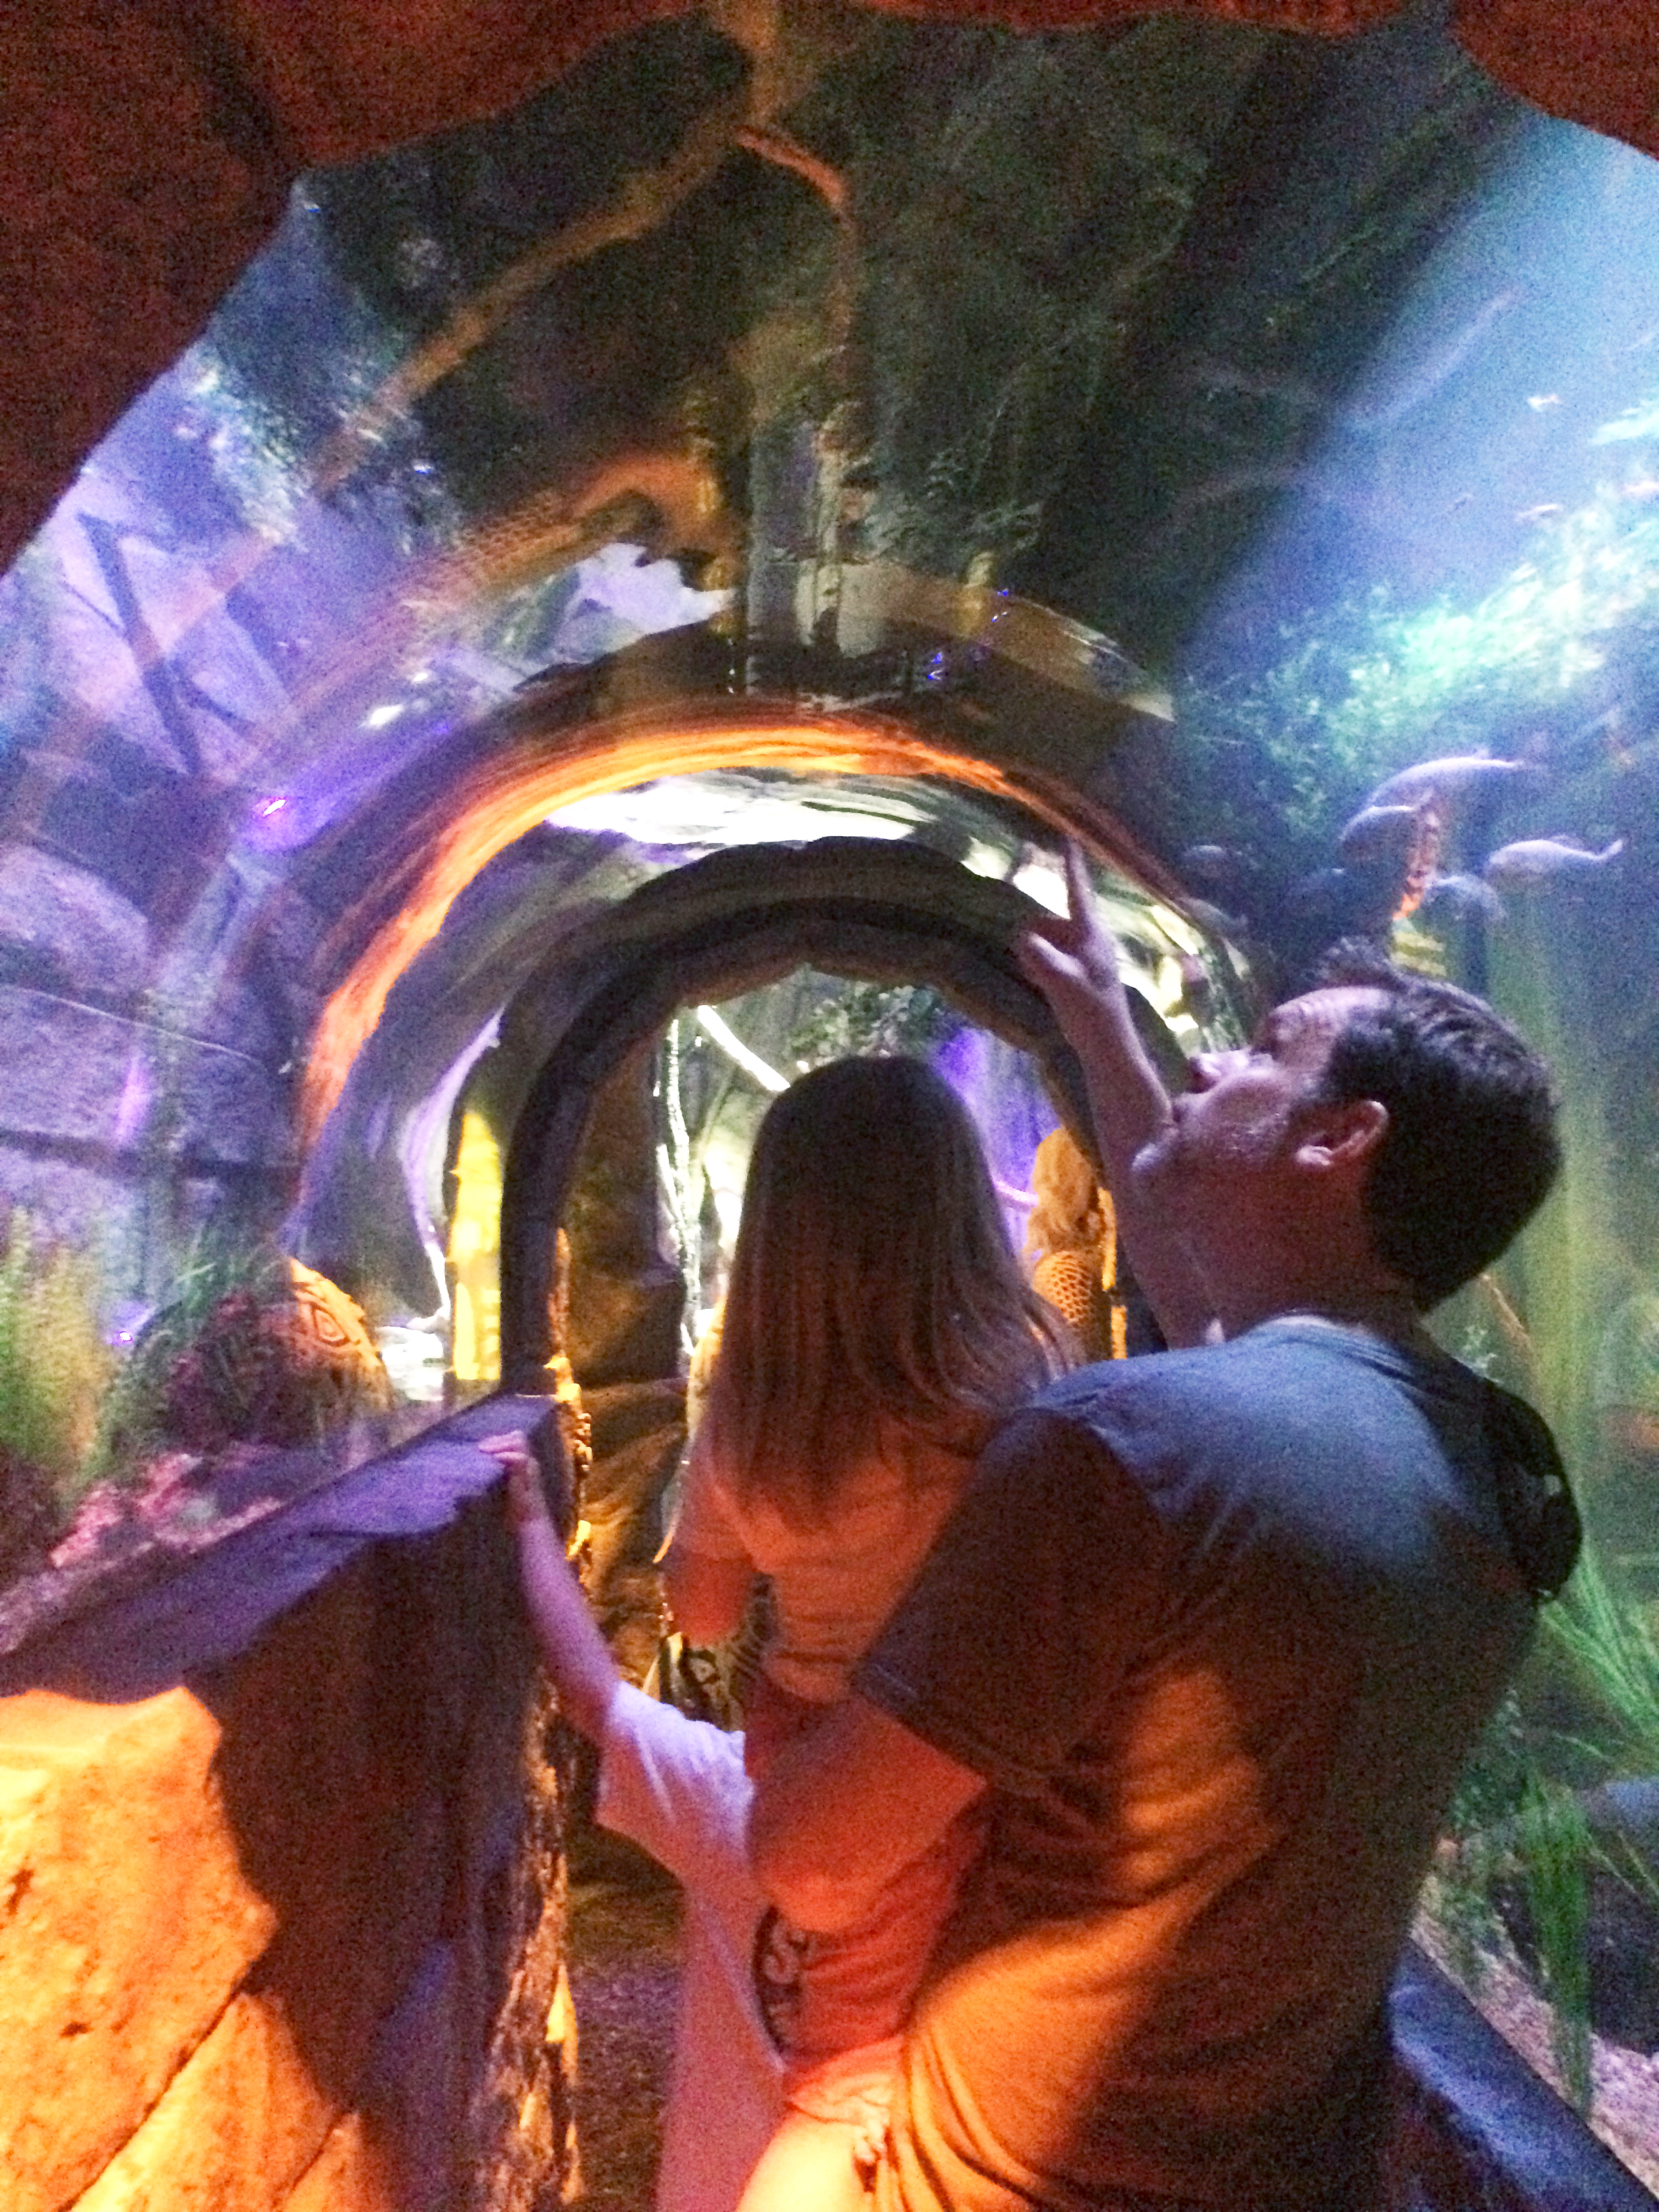 the 8 ft. long piranha tunnel